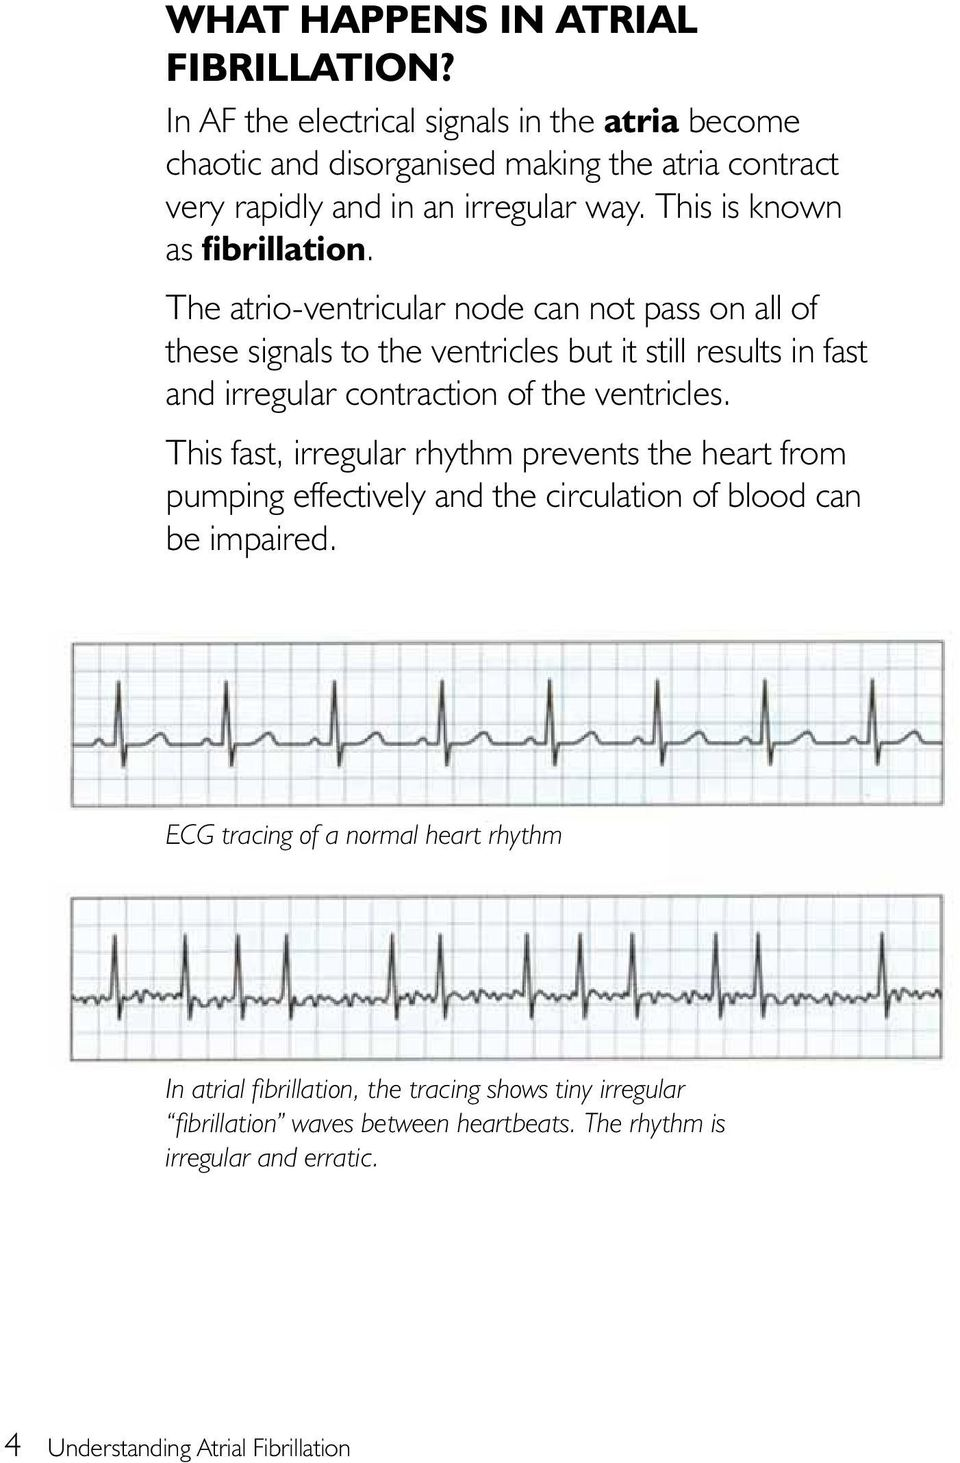 The atrio-ventricular node can not pass on all of these signals to the ventricles but it still results in fast and irregular contraction of the ventricles.